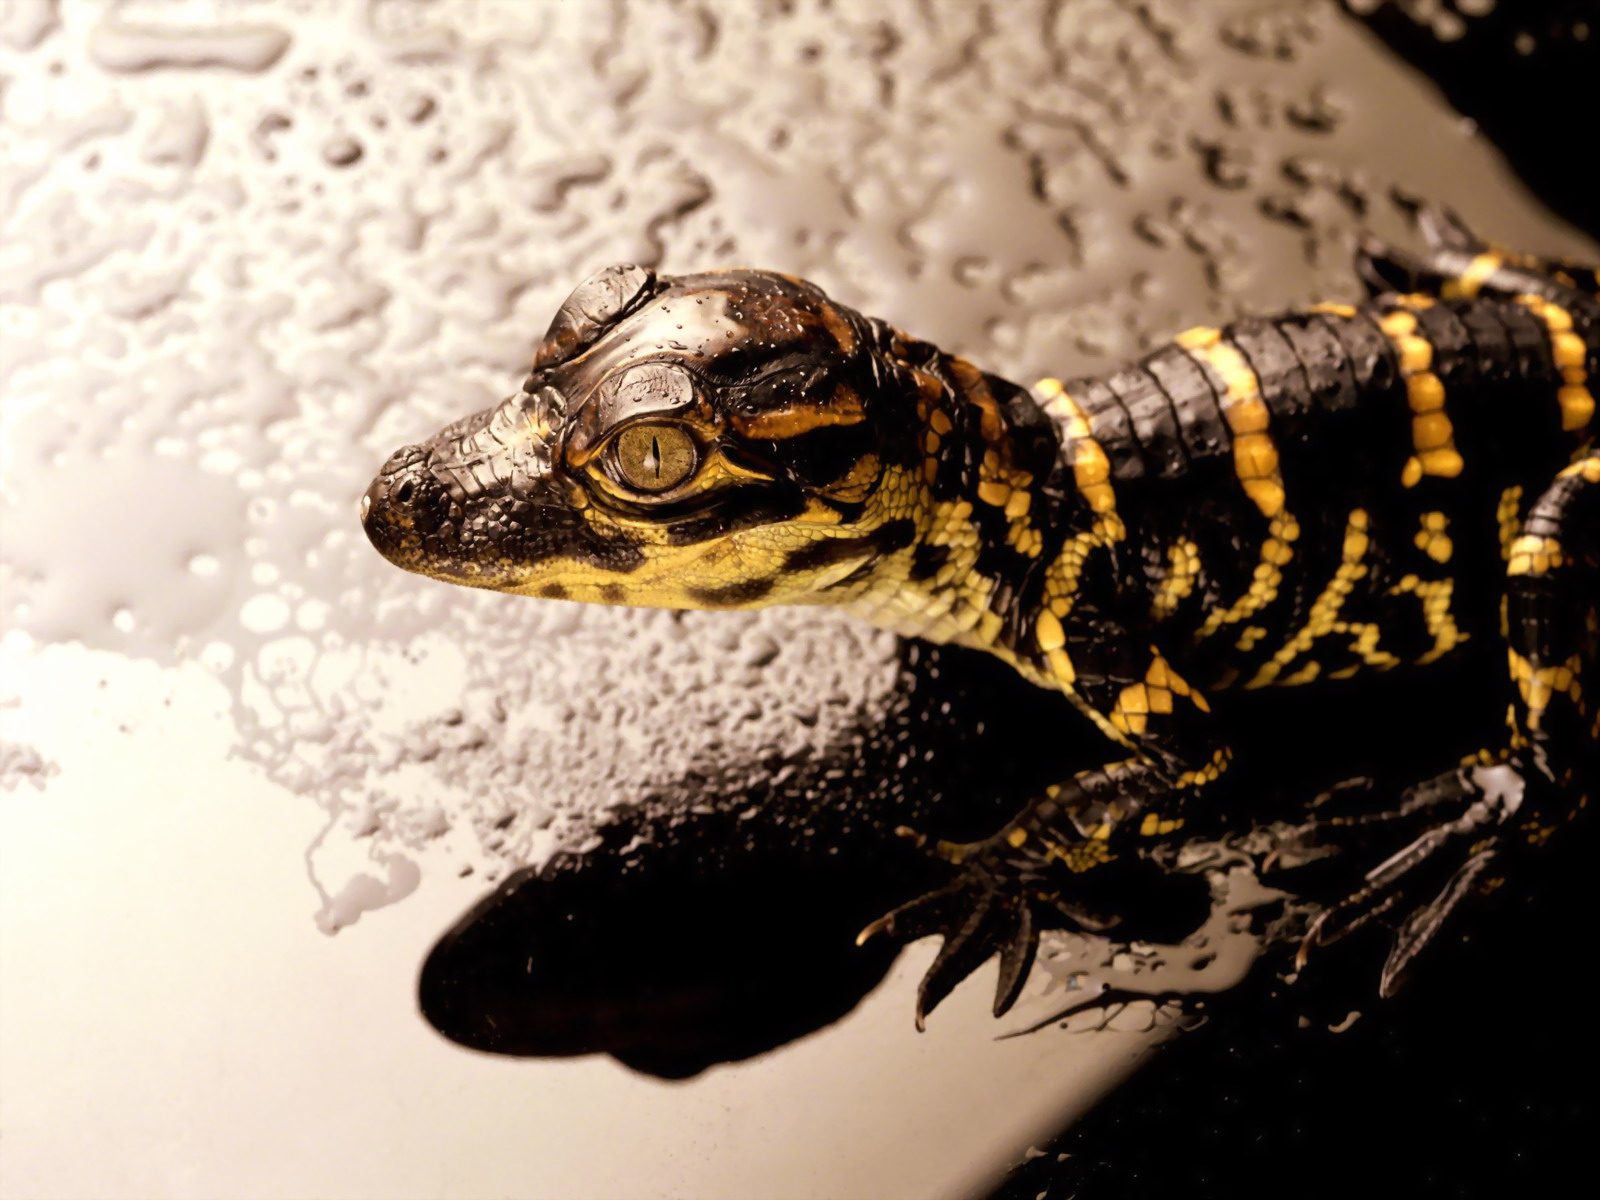 22 reptile hd wallpapers - photo #11